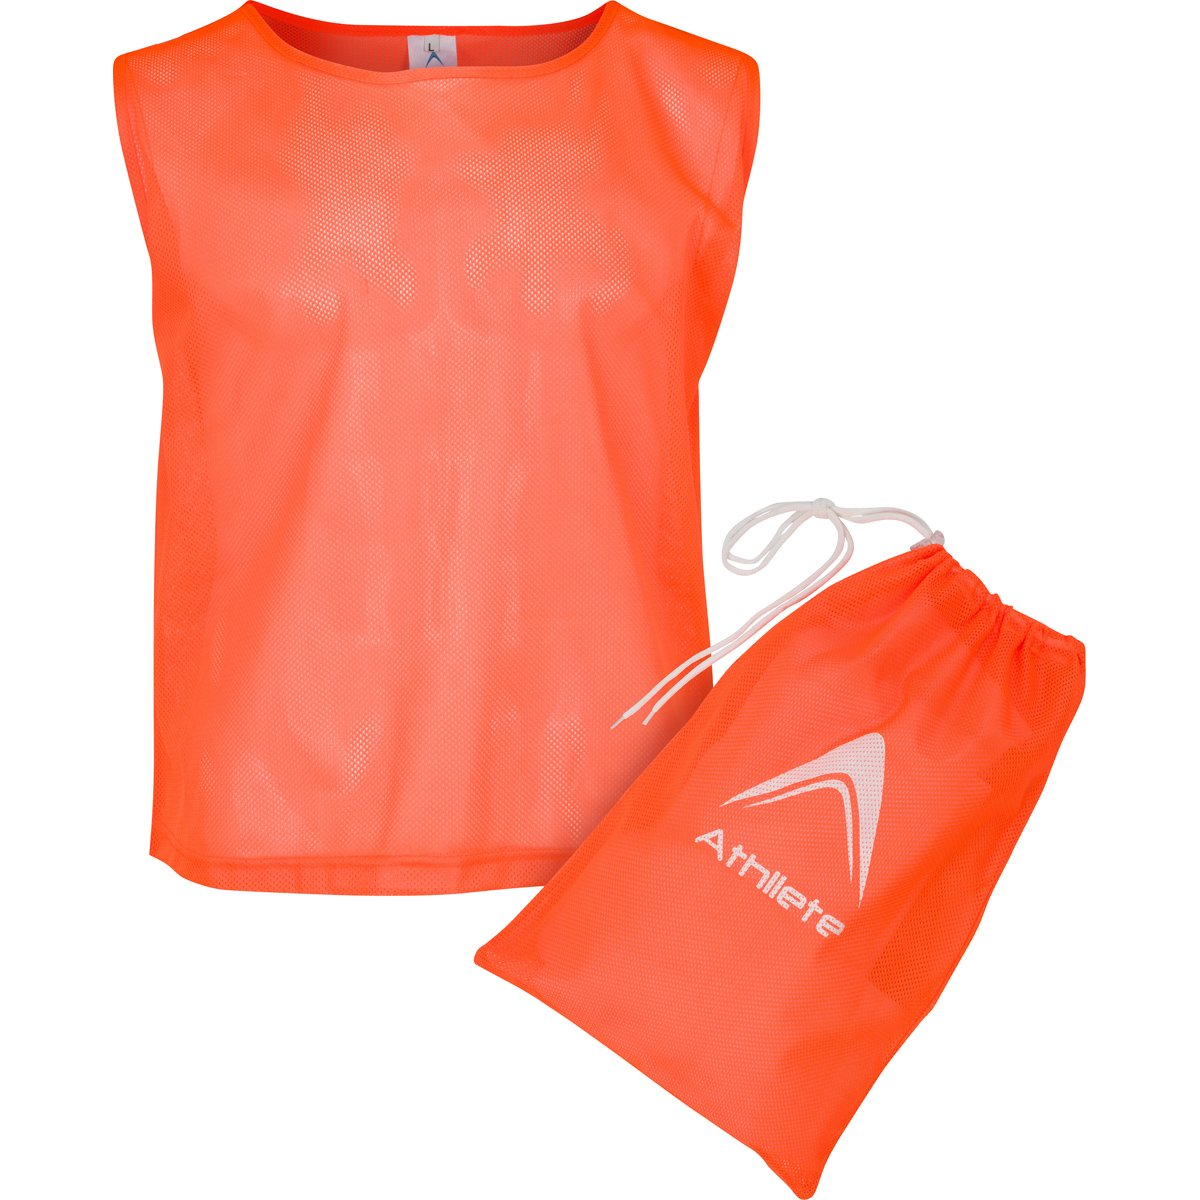 Athllete Set of 12 - Child Scrimmage Vests/Pinnies/Team Practice Jerseys with Free Carry Bag (Flame Orange, Small)